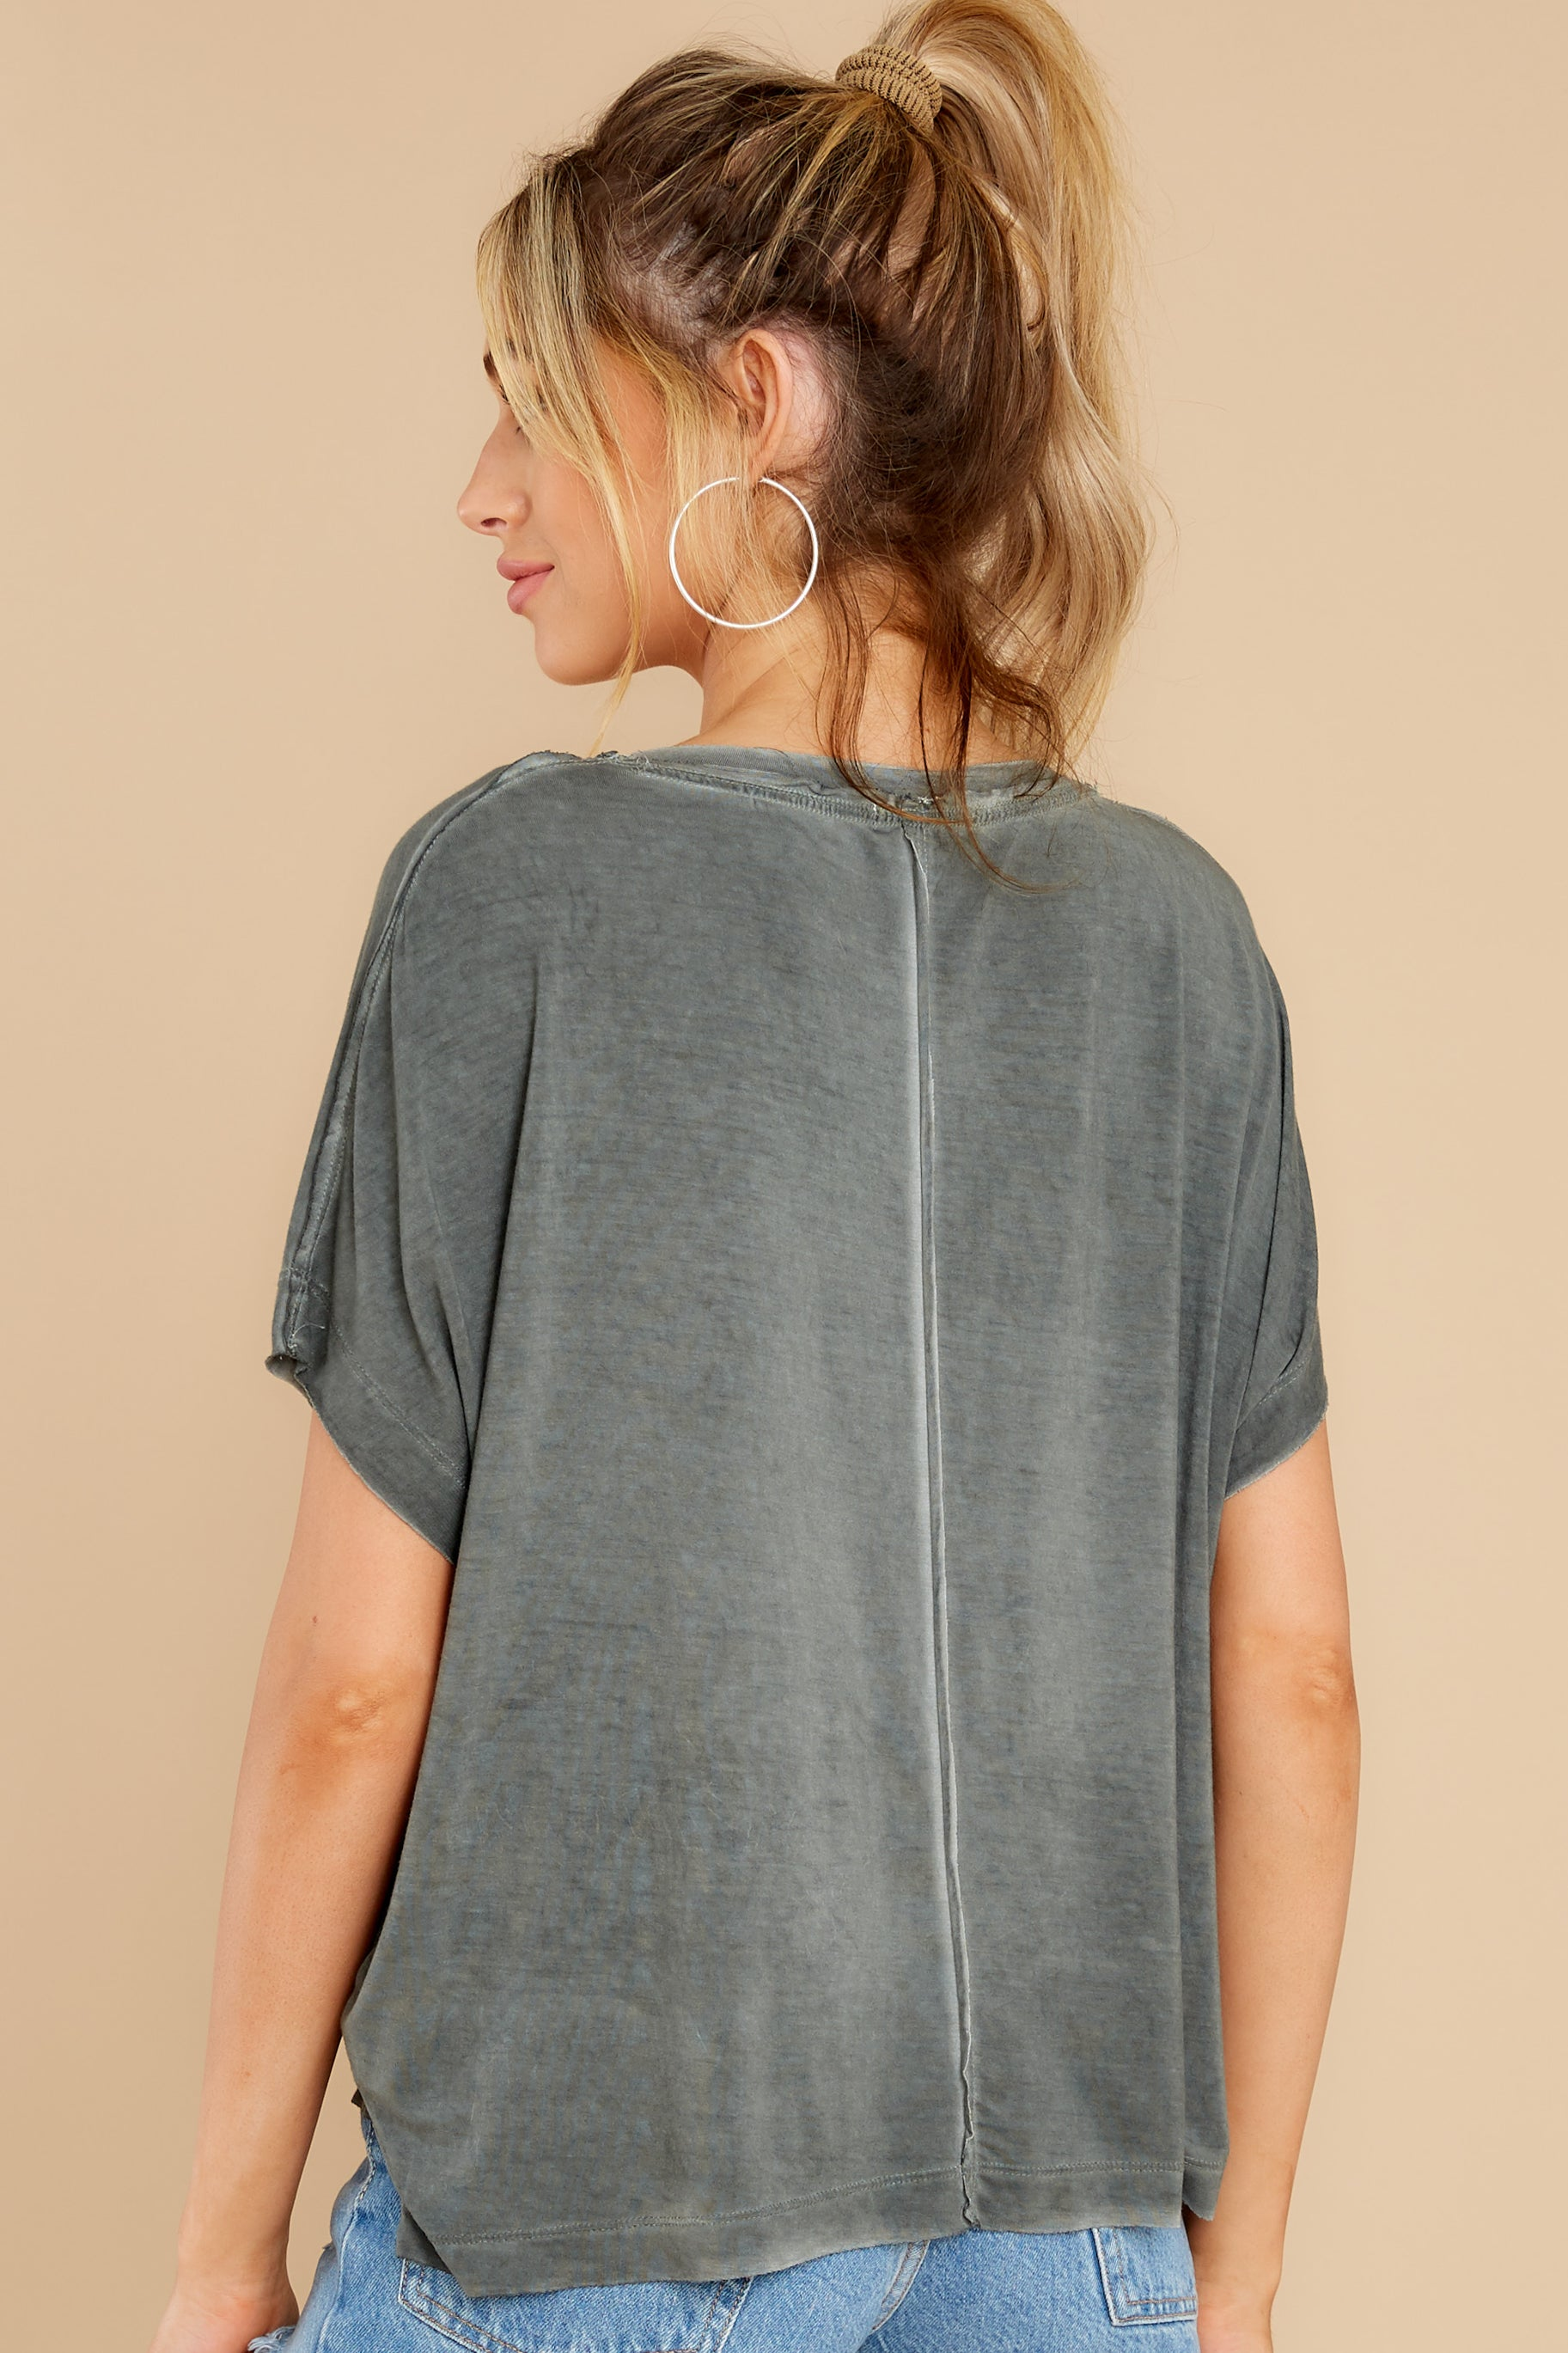 7 Mischa Sleek Ash Green V-Neck Tee at reddress.com